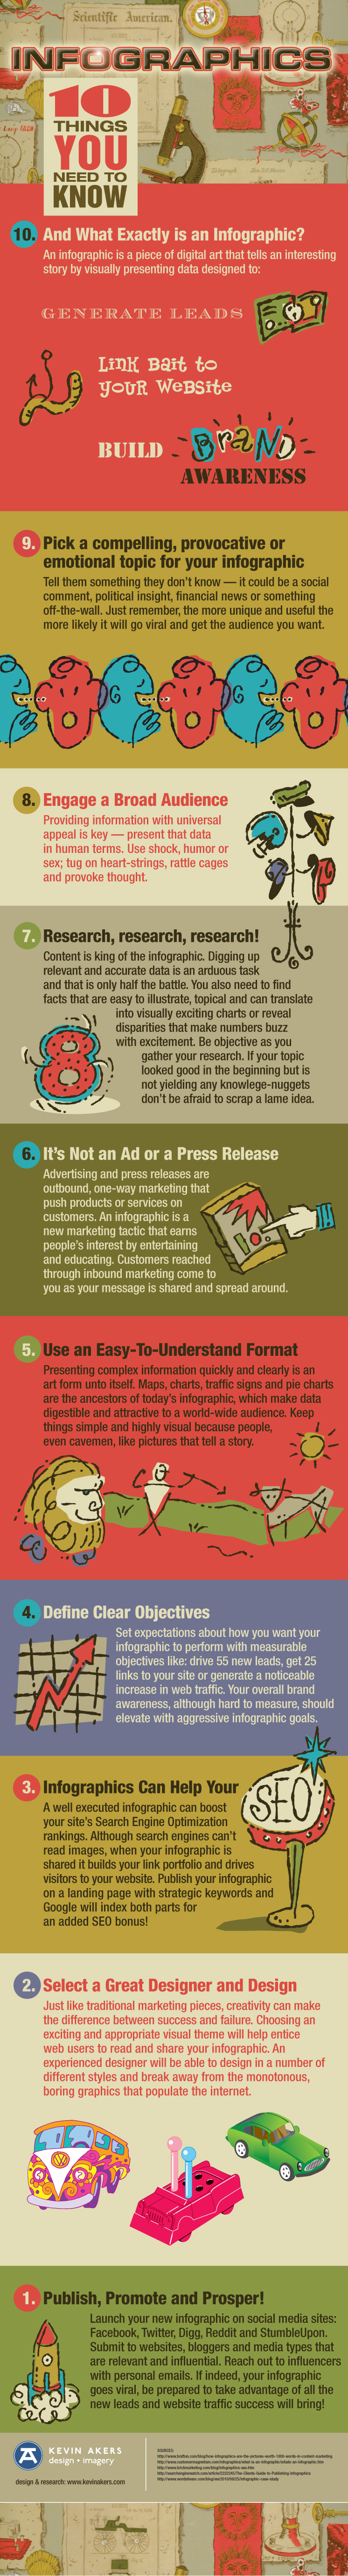 Infographics: 10 Things You Need To Know